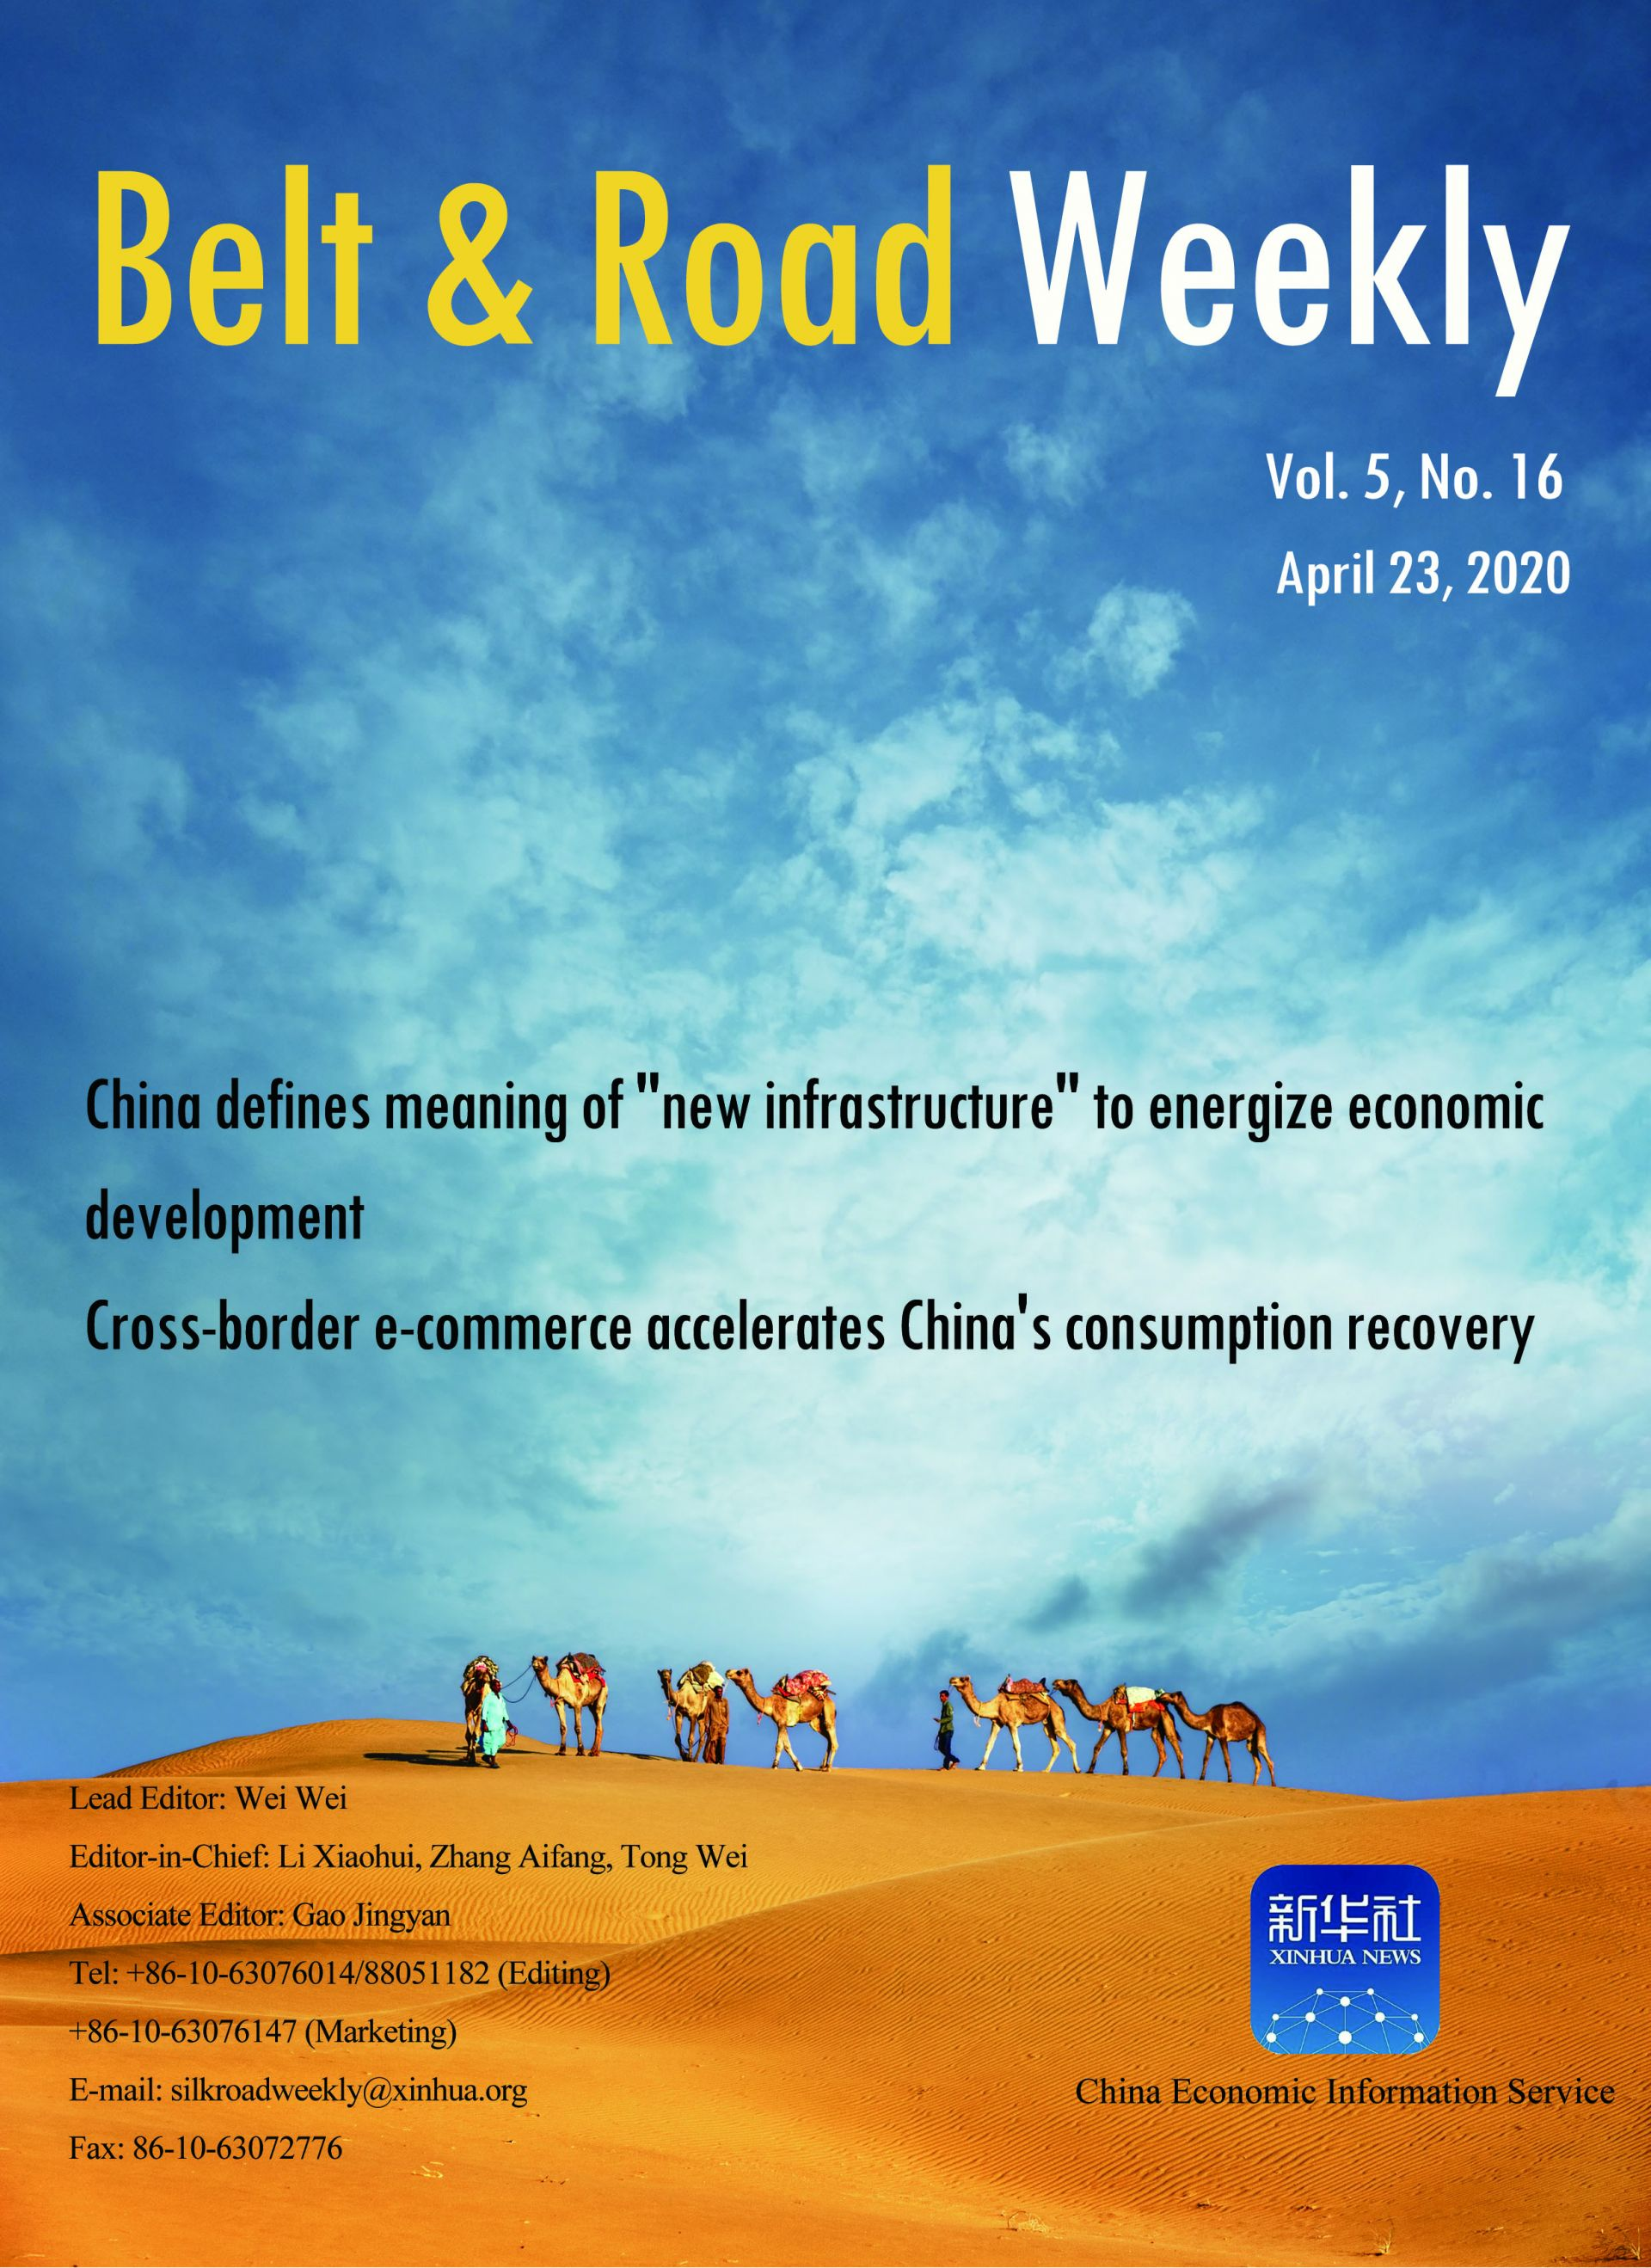 Belt & Road Weekly Vol. 5 No. 16